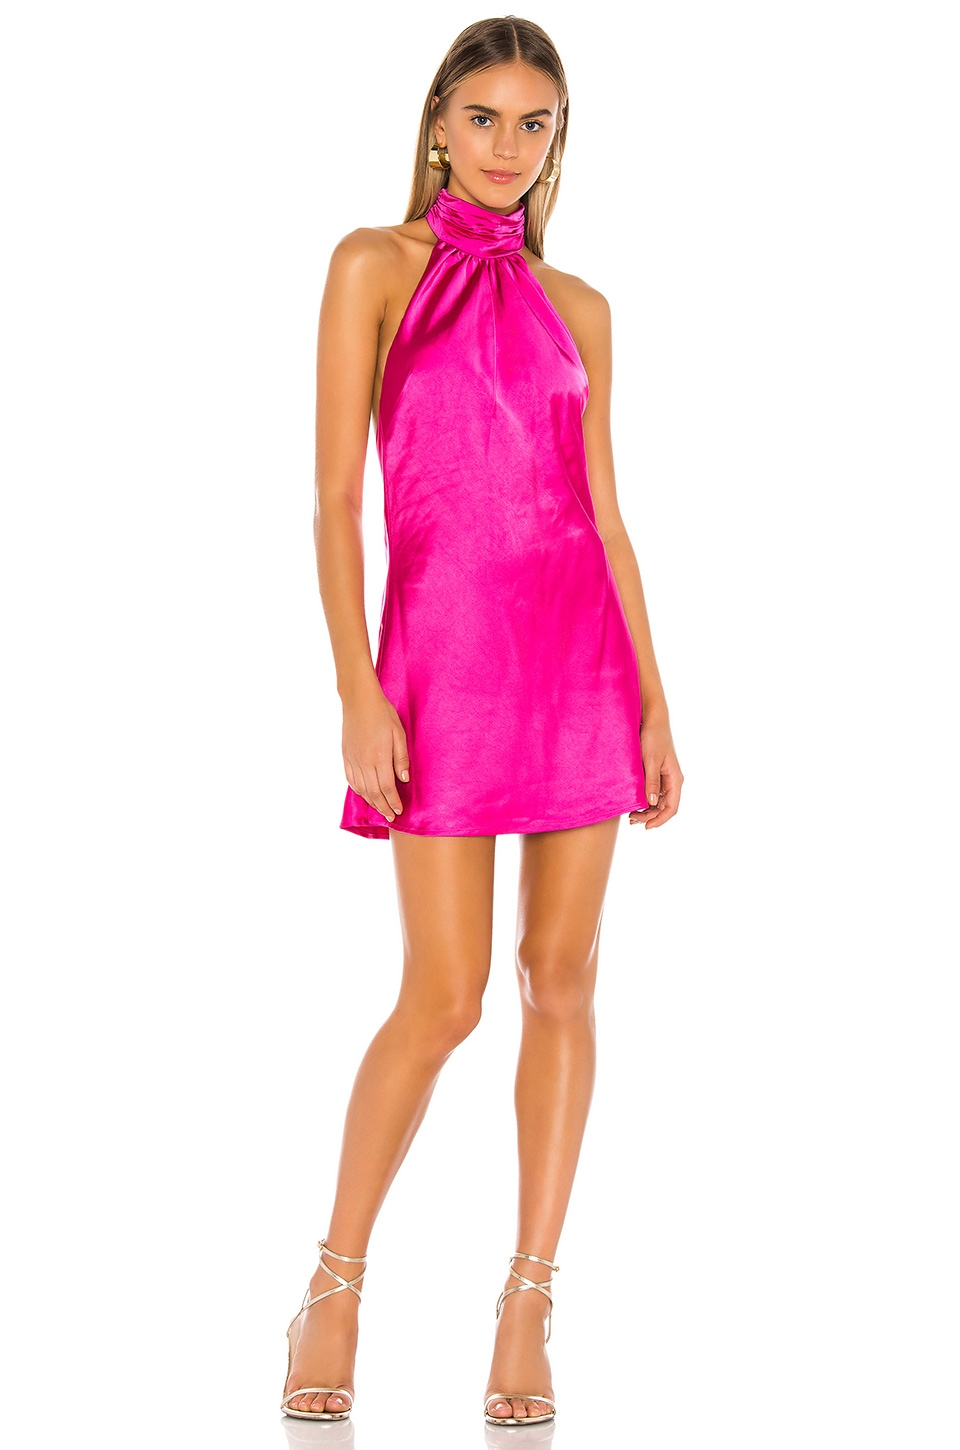 Lovers + Friends Hayes Mini Dress in Magenta Pink